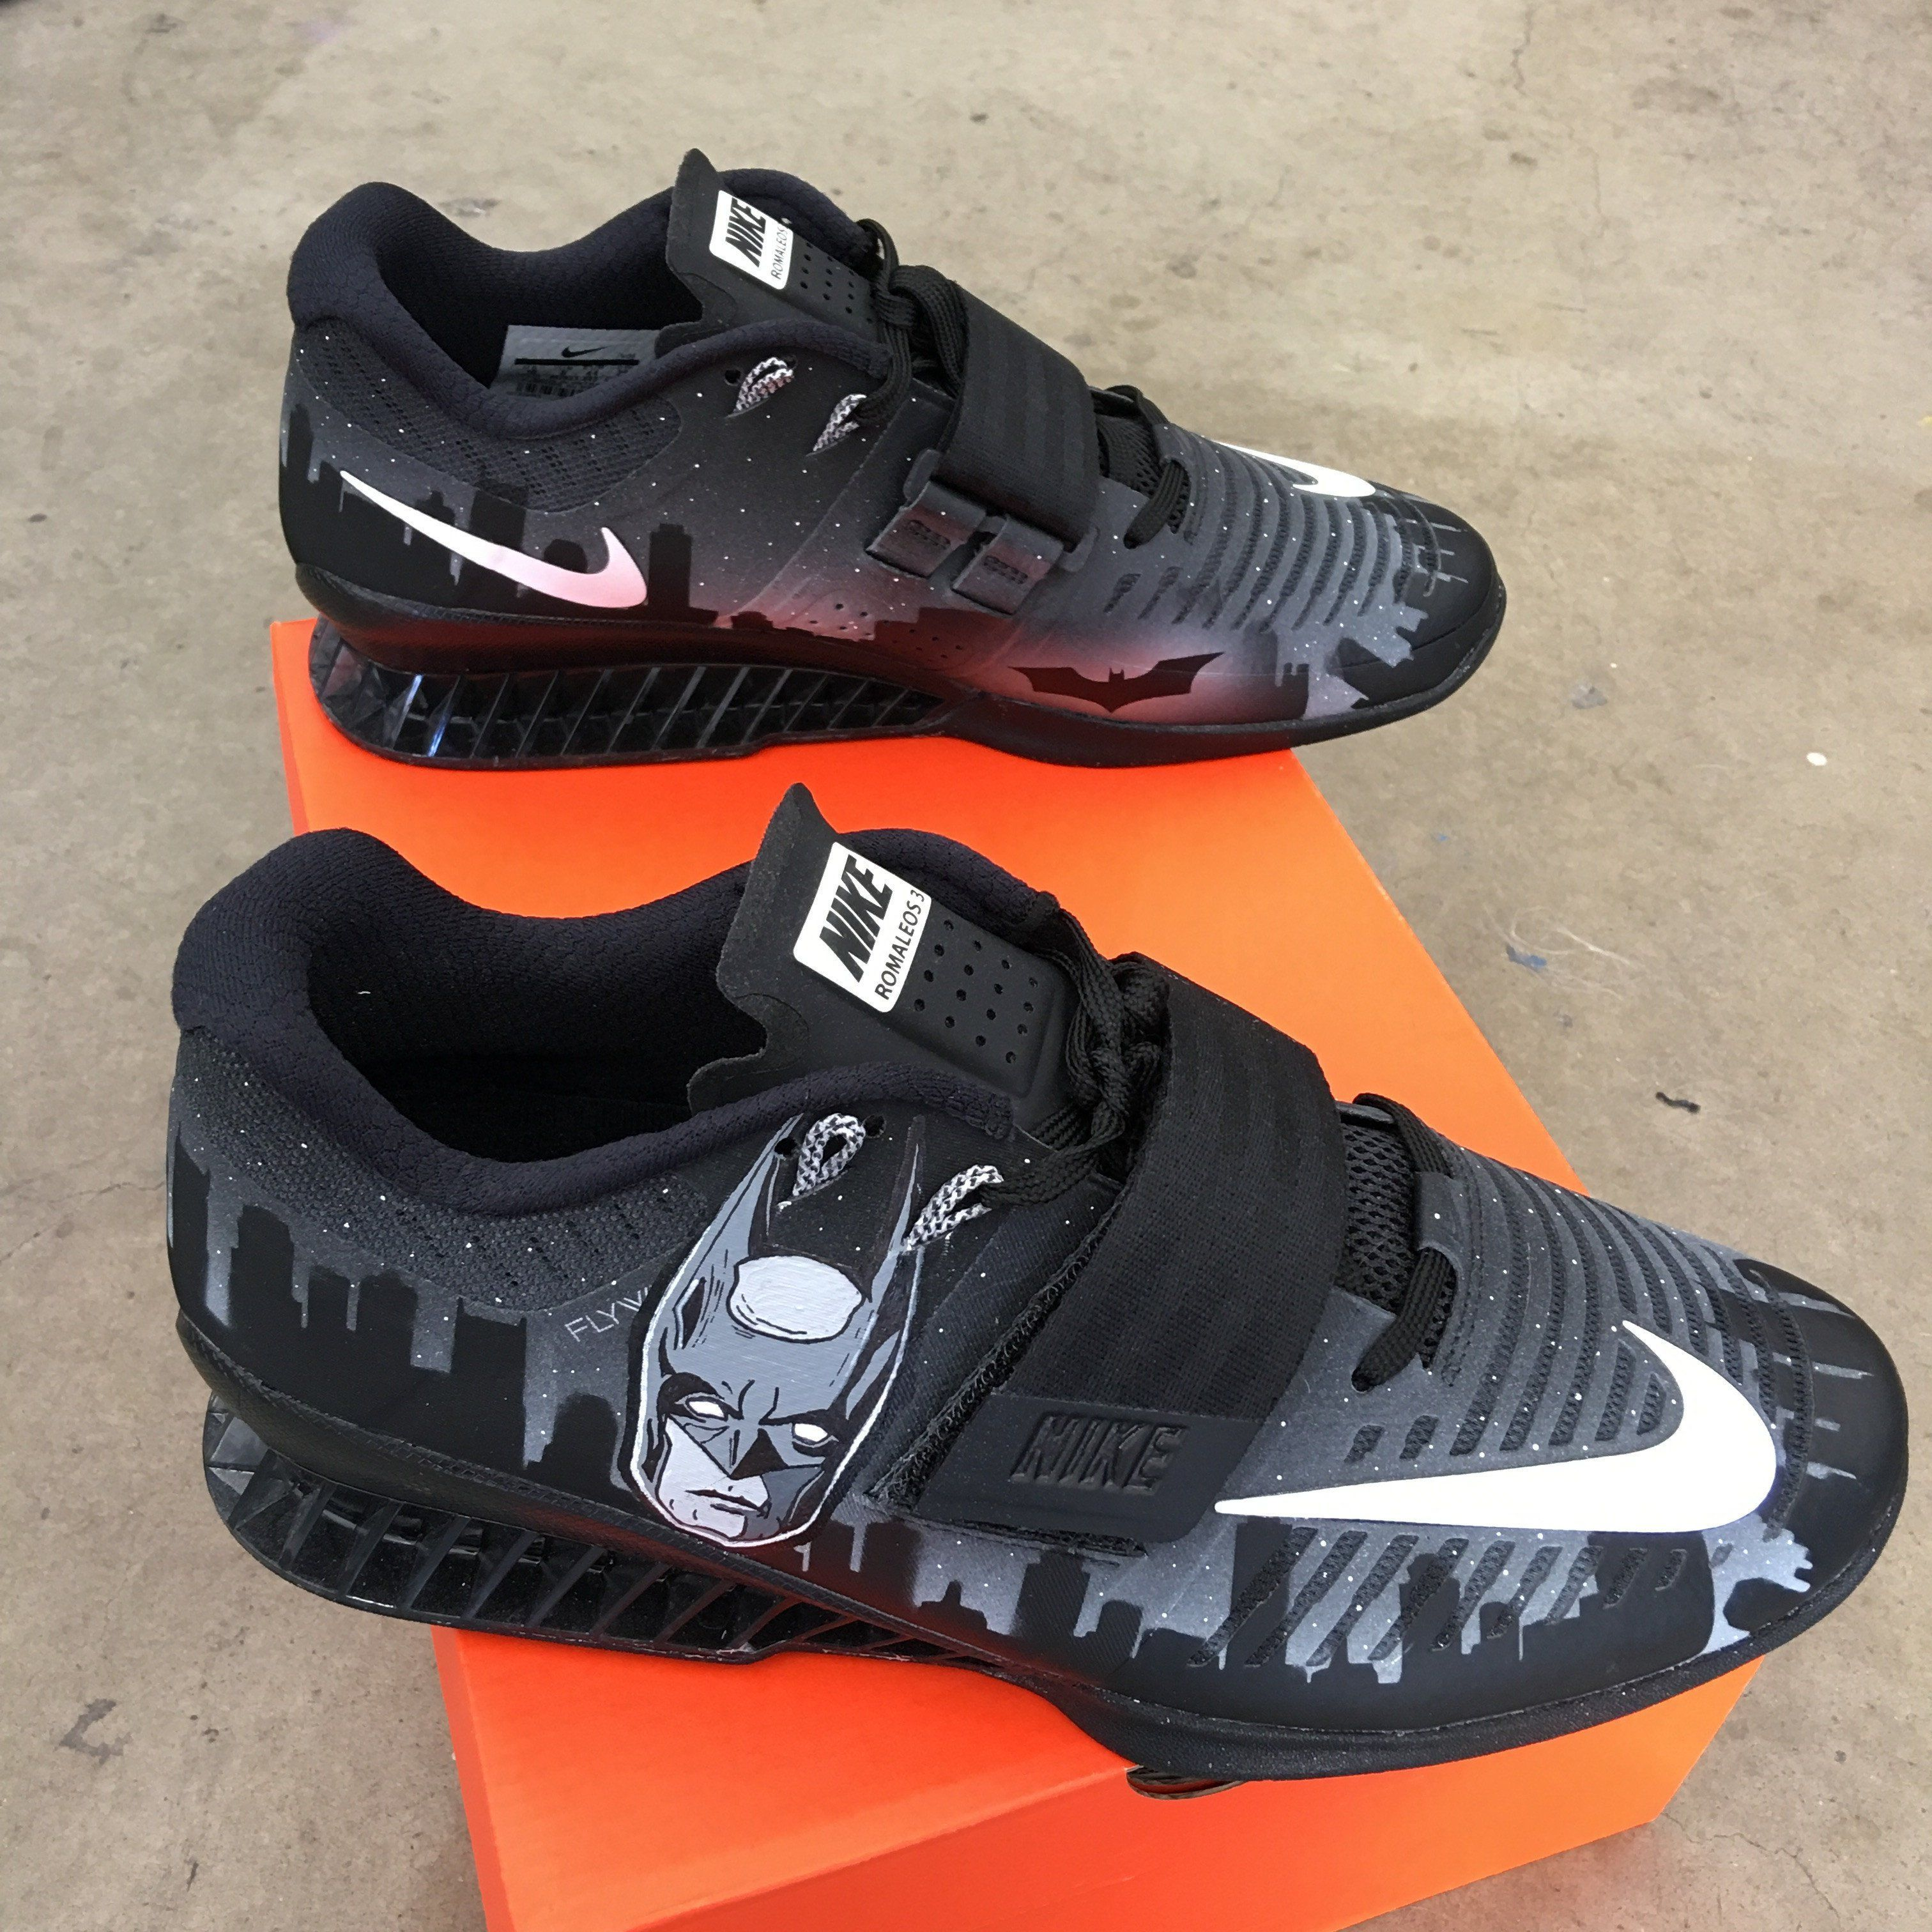 208c6e6fd721 These Nike Romaleos 3 have been painted in a Batman and Joker Theme. Gotham  City